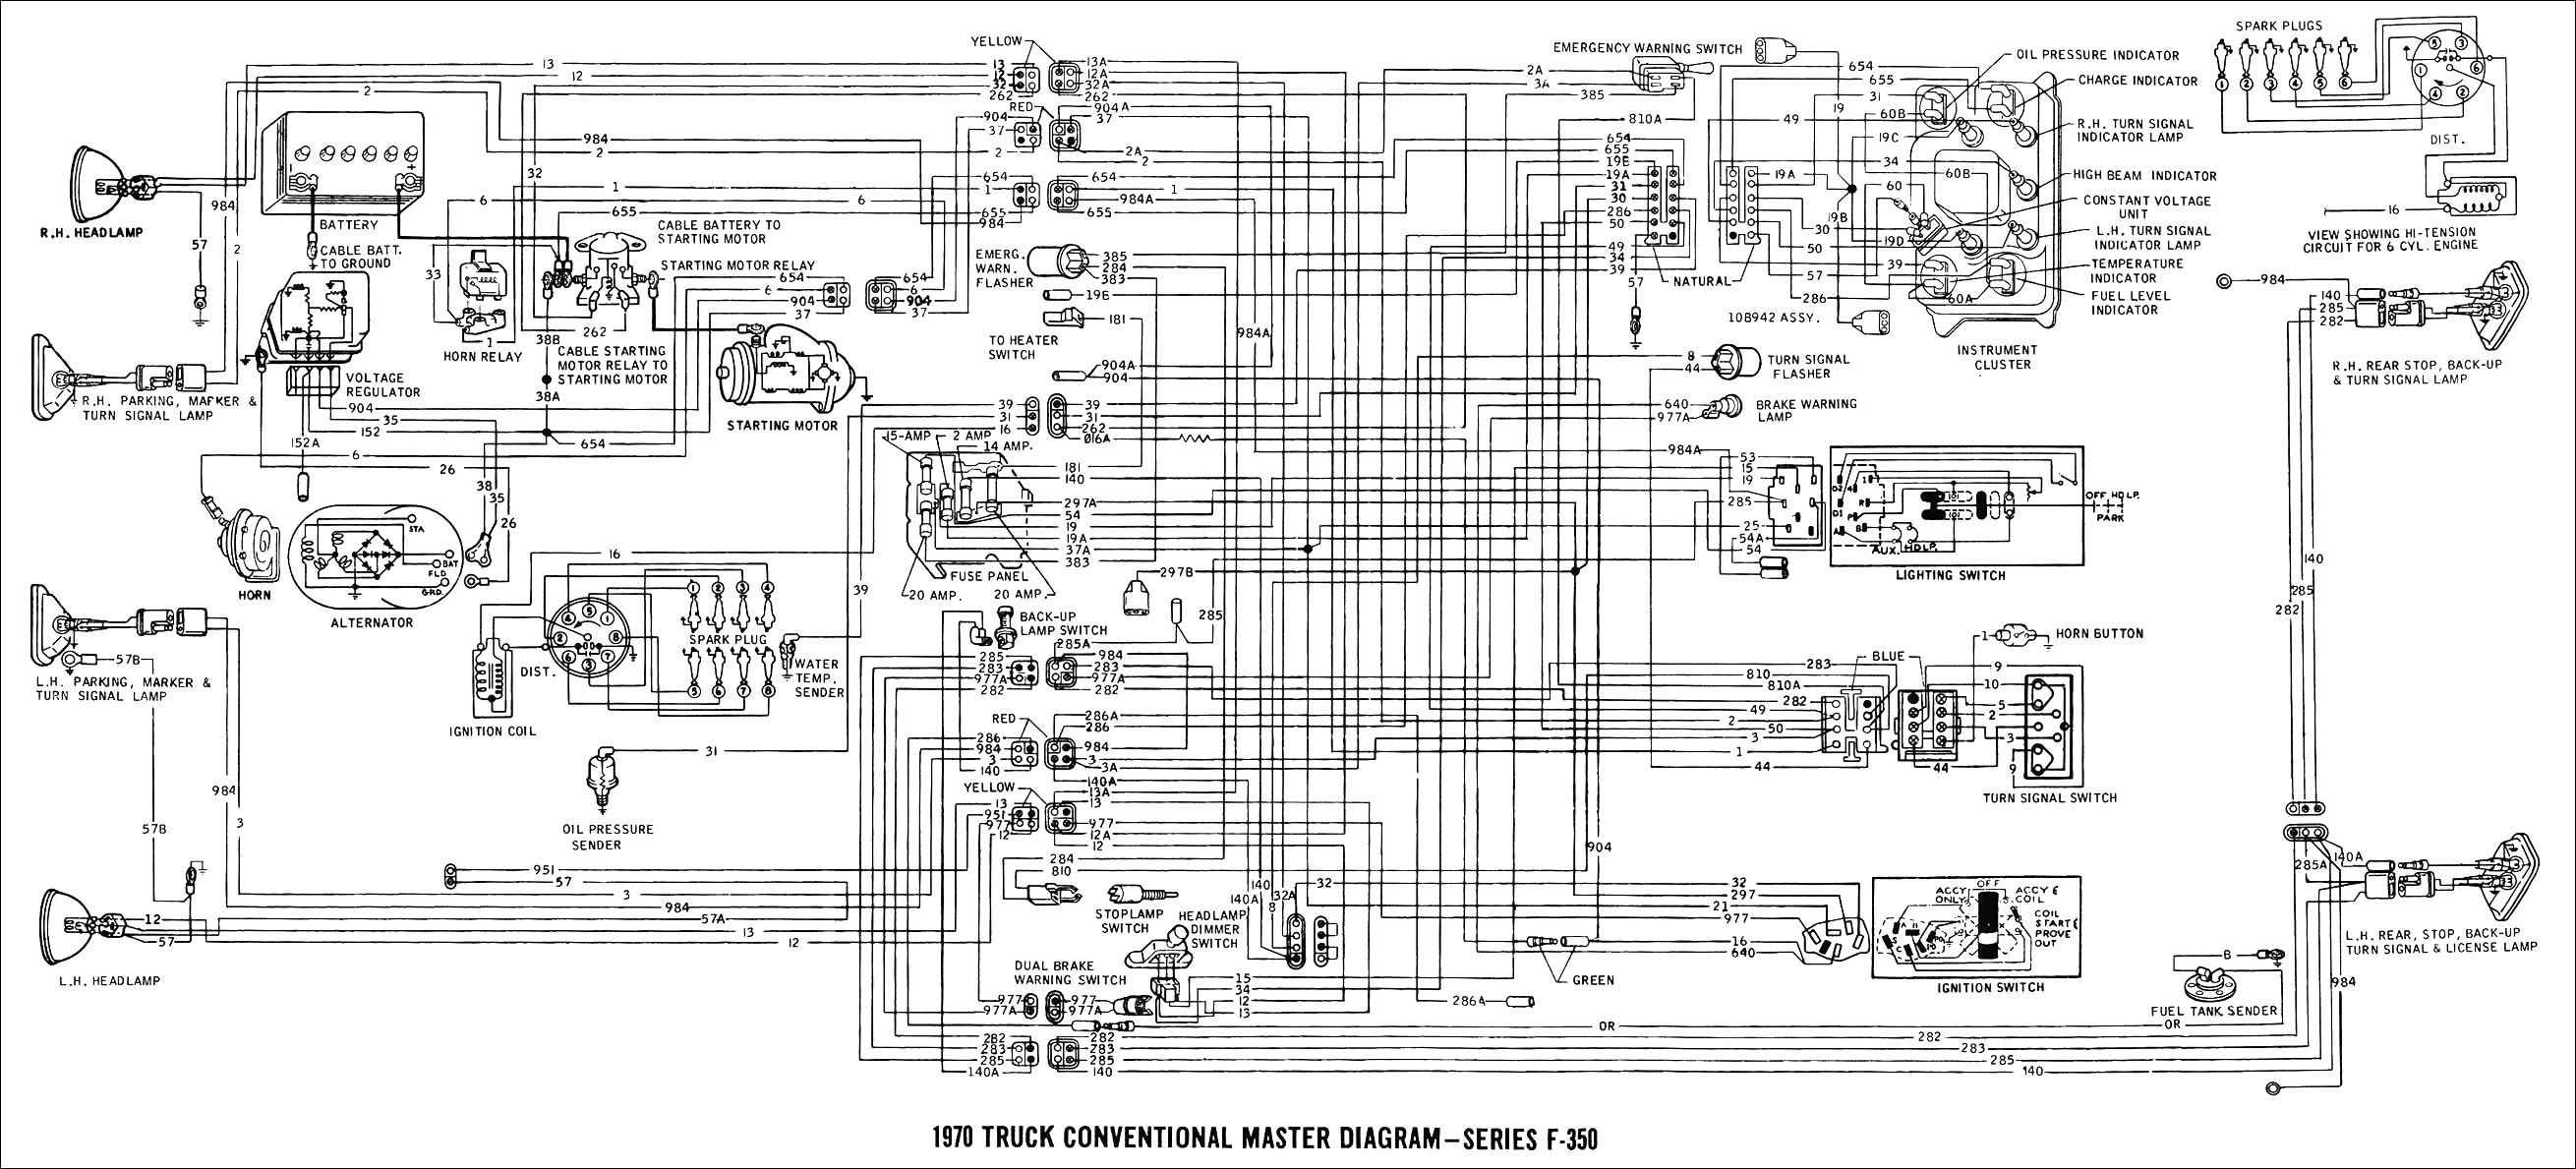 1944 ford truck wiring diagram schematic example electrical wiring rh huntervalleyhotels co Ford Truck Diagrams Online 2006 Ford Truck Wiring Diagram